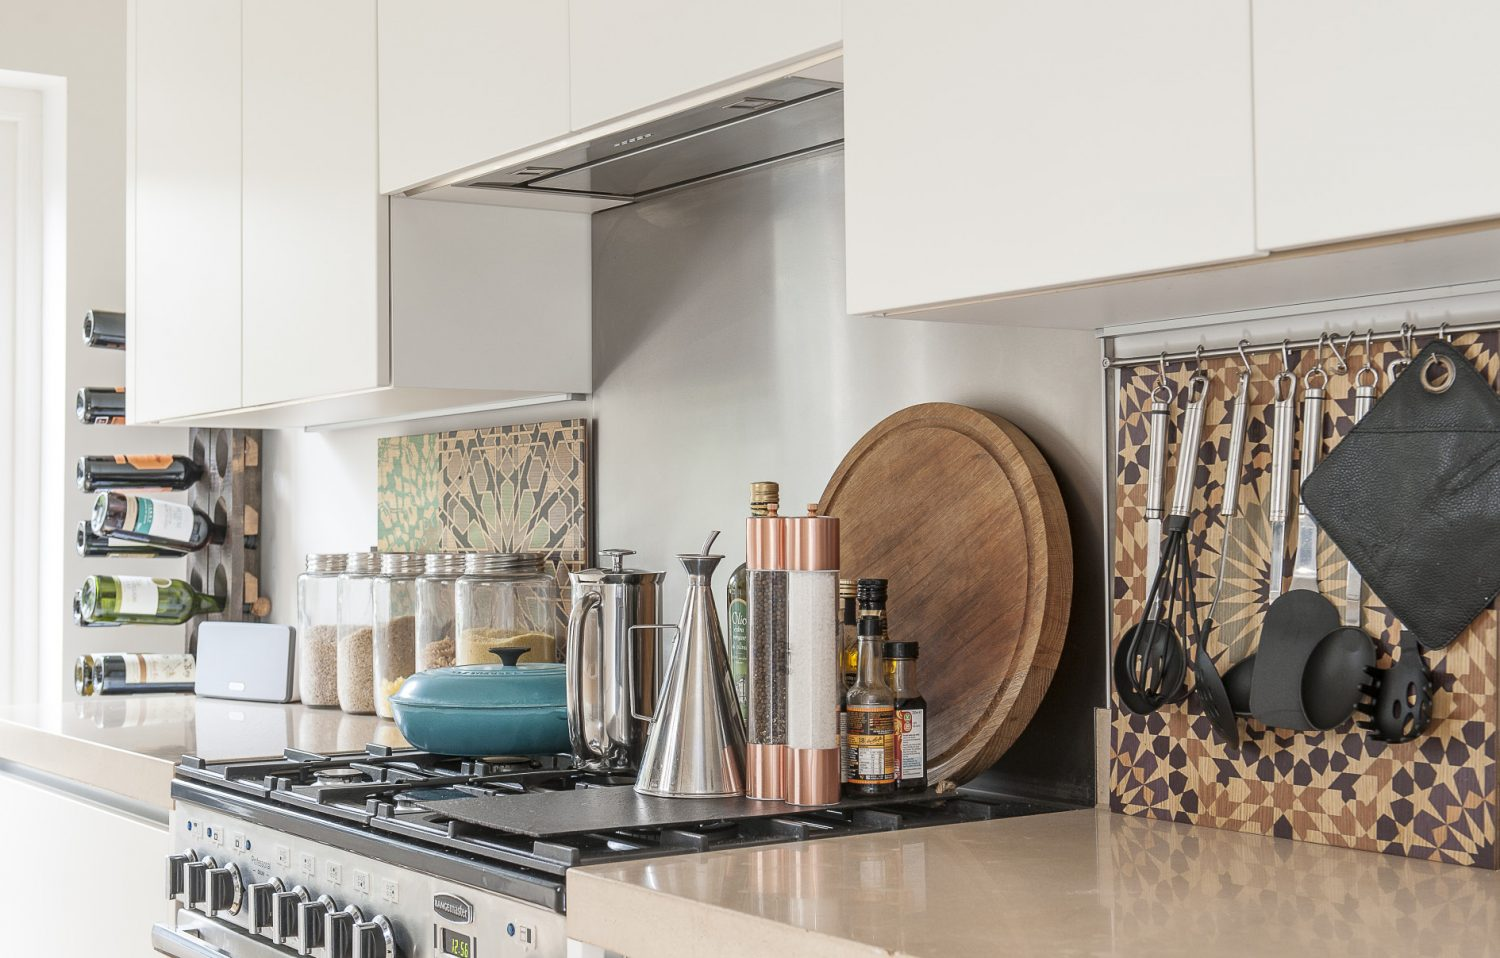 Justine is on-trend with her copper-coloured kitchen accessories and complementary ply retro boards used as a splash-back